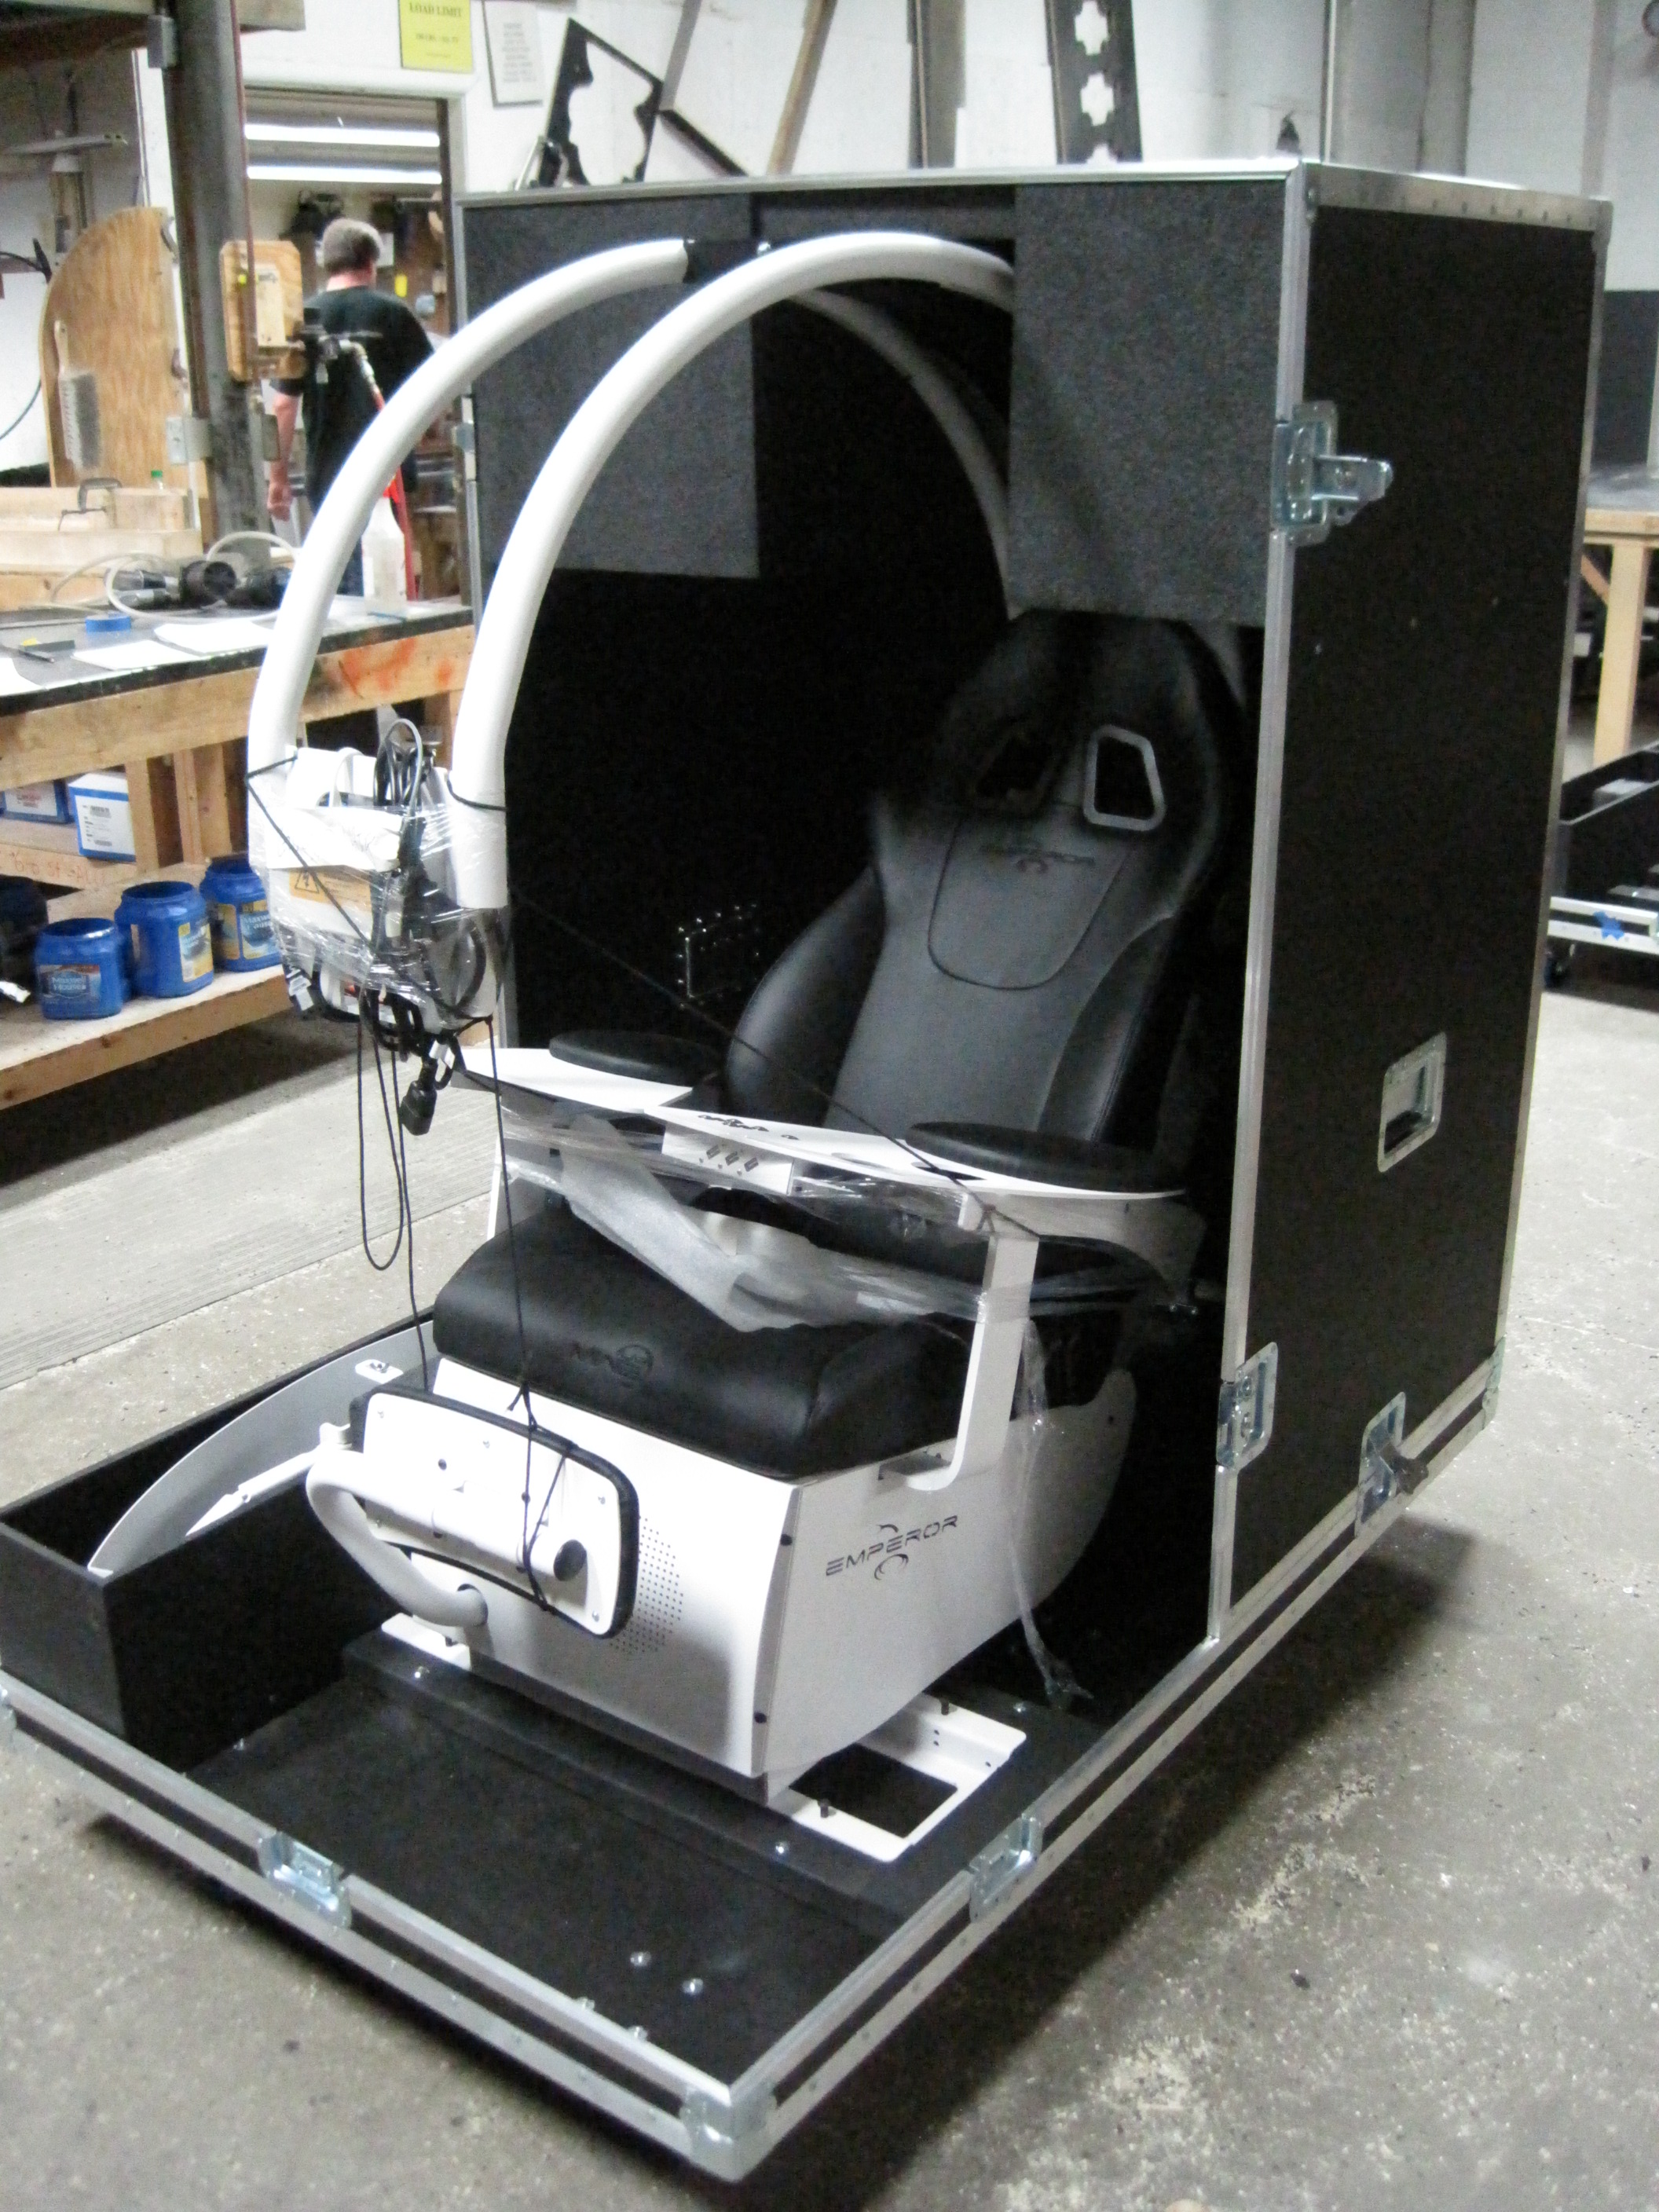 Jb Lighting A12 Used Northern Case Touring Cases For Lighting Audio And More